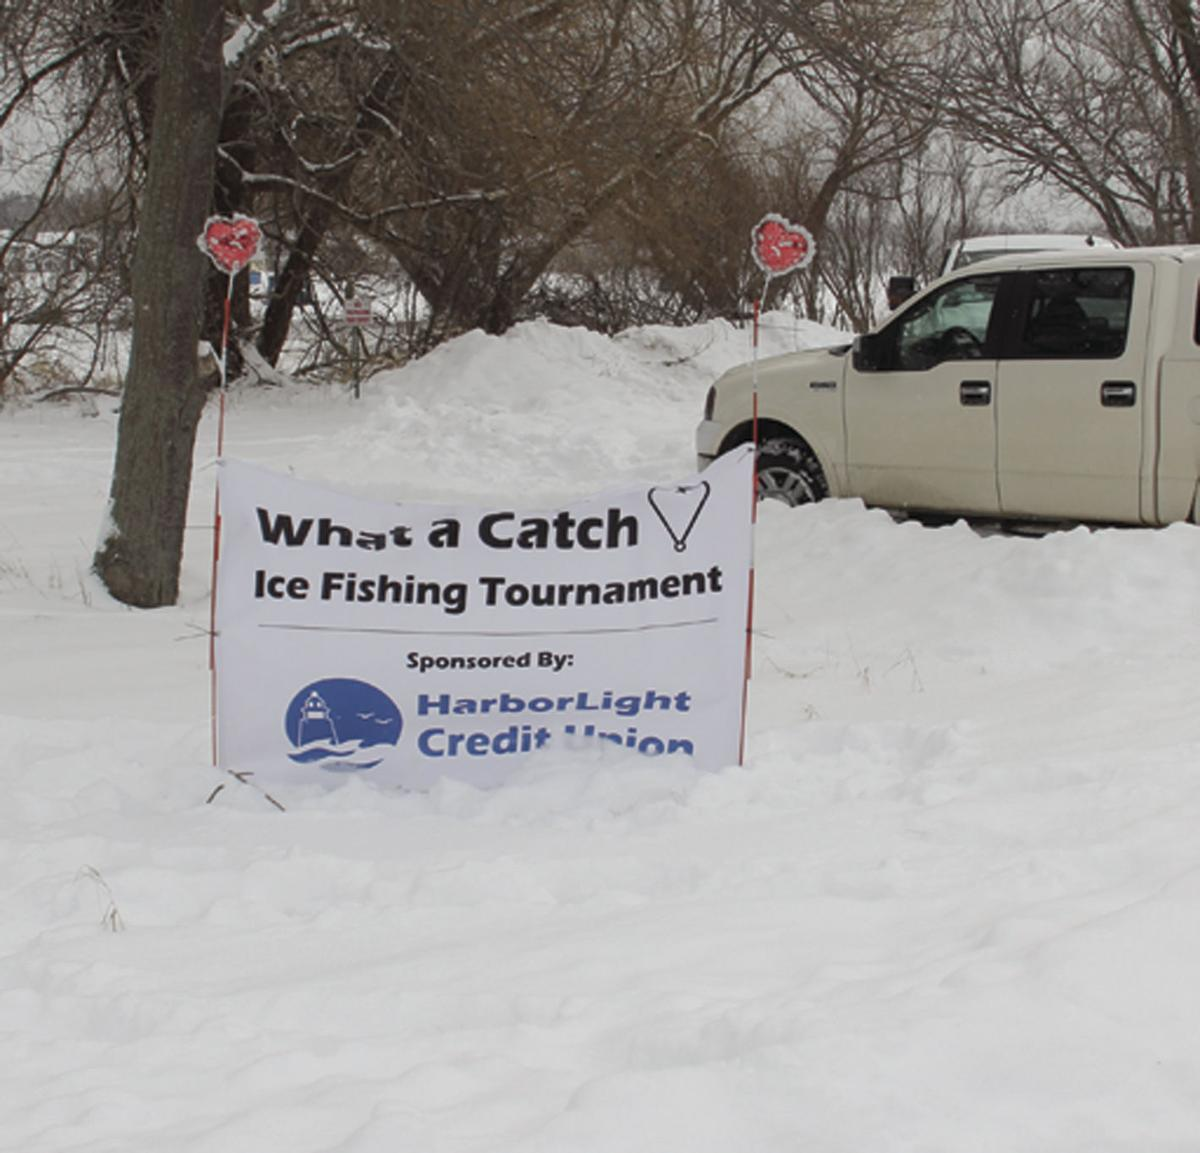 What a Catch: Ice Fishing Tournament